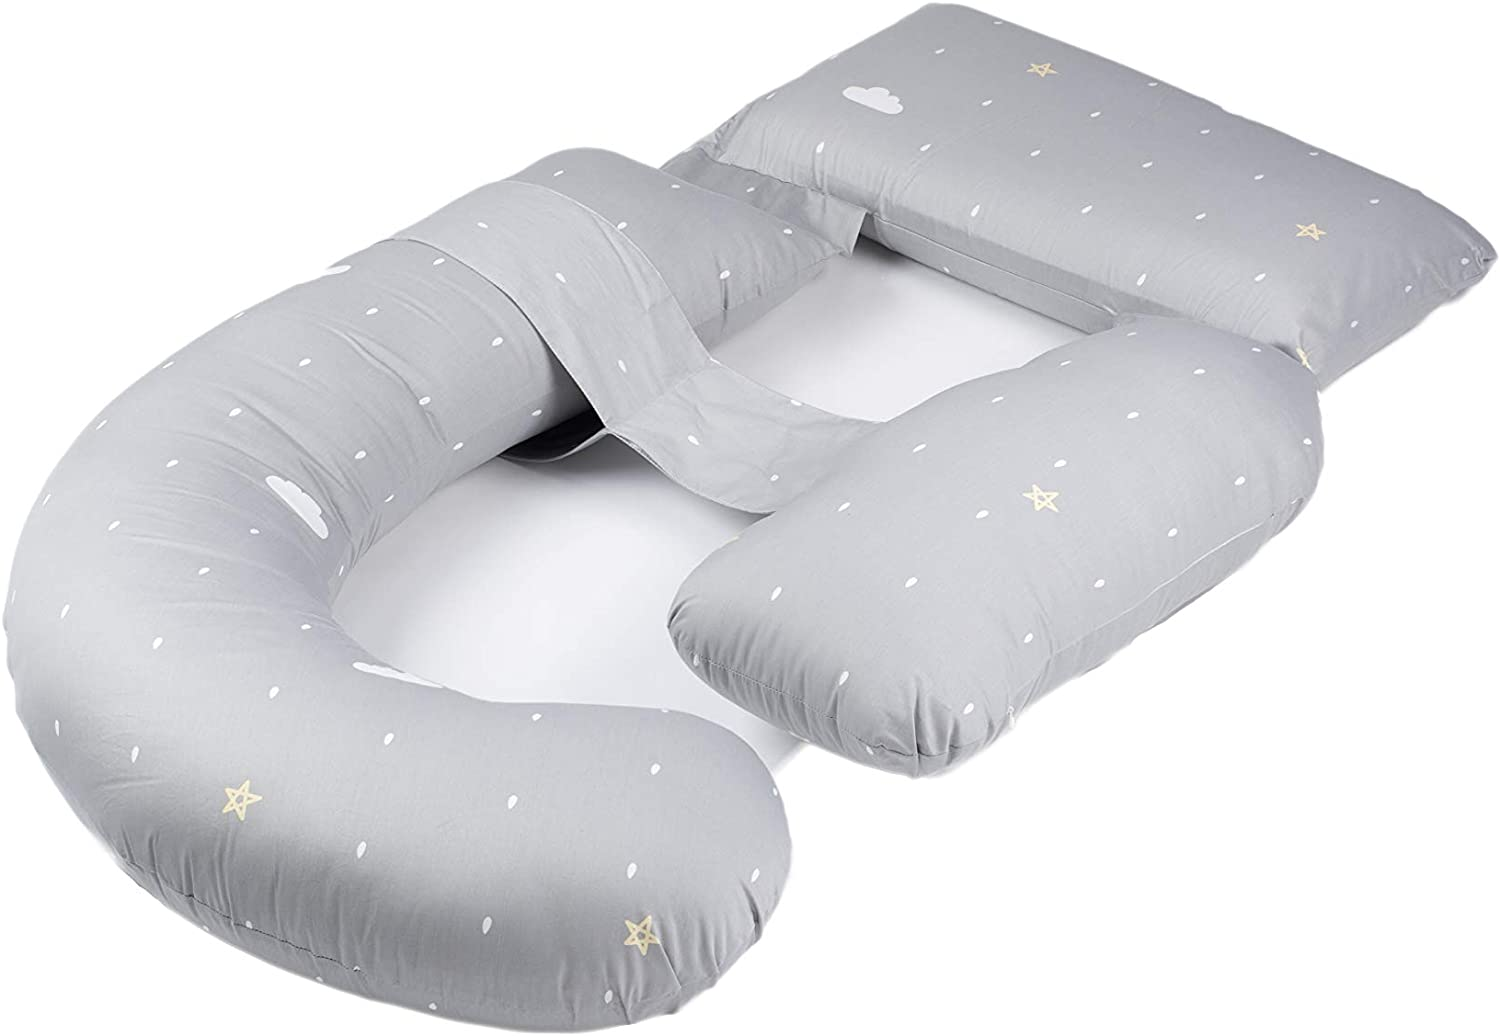 BESTLA Pregnancy Pillow with Luxury Store 100% Cover Sleep Cotton Comfortable